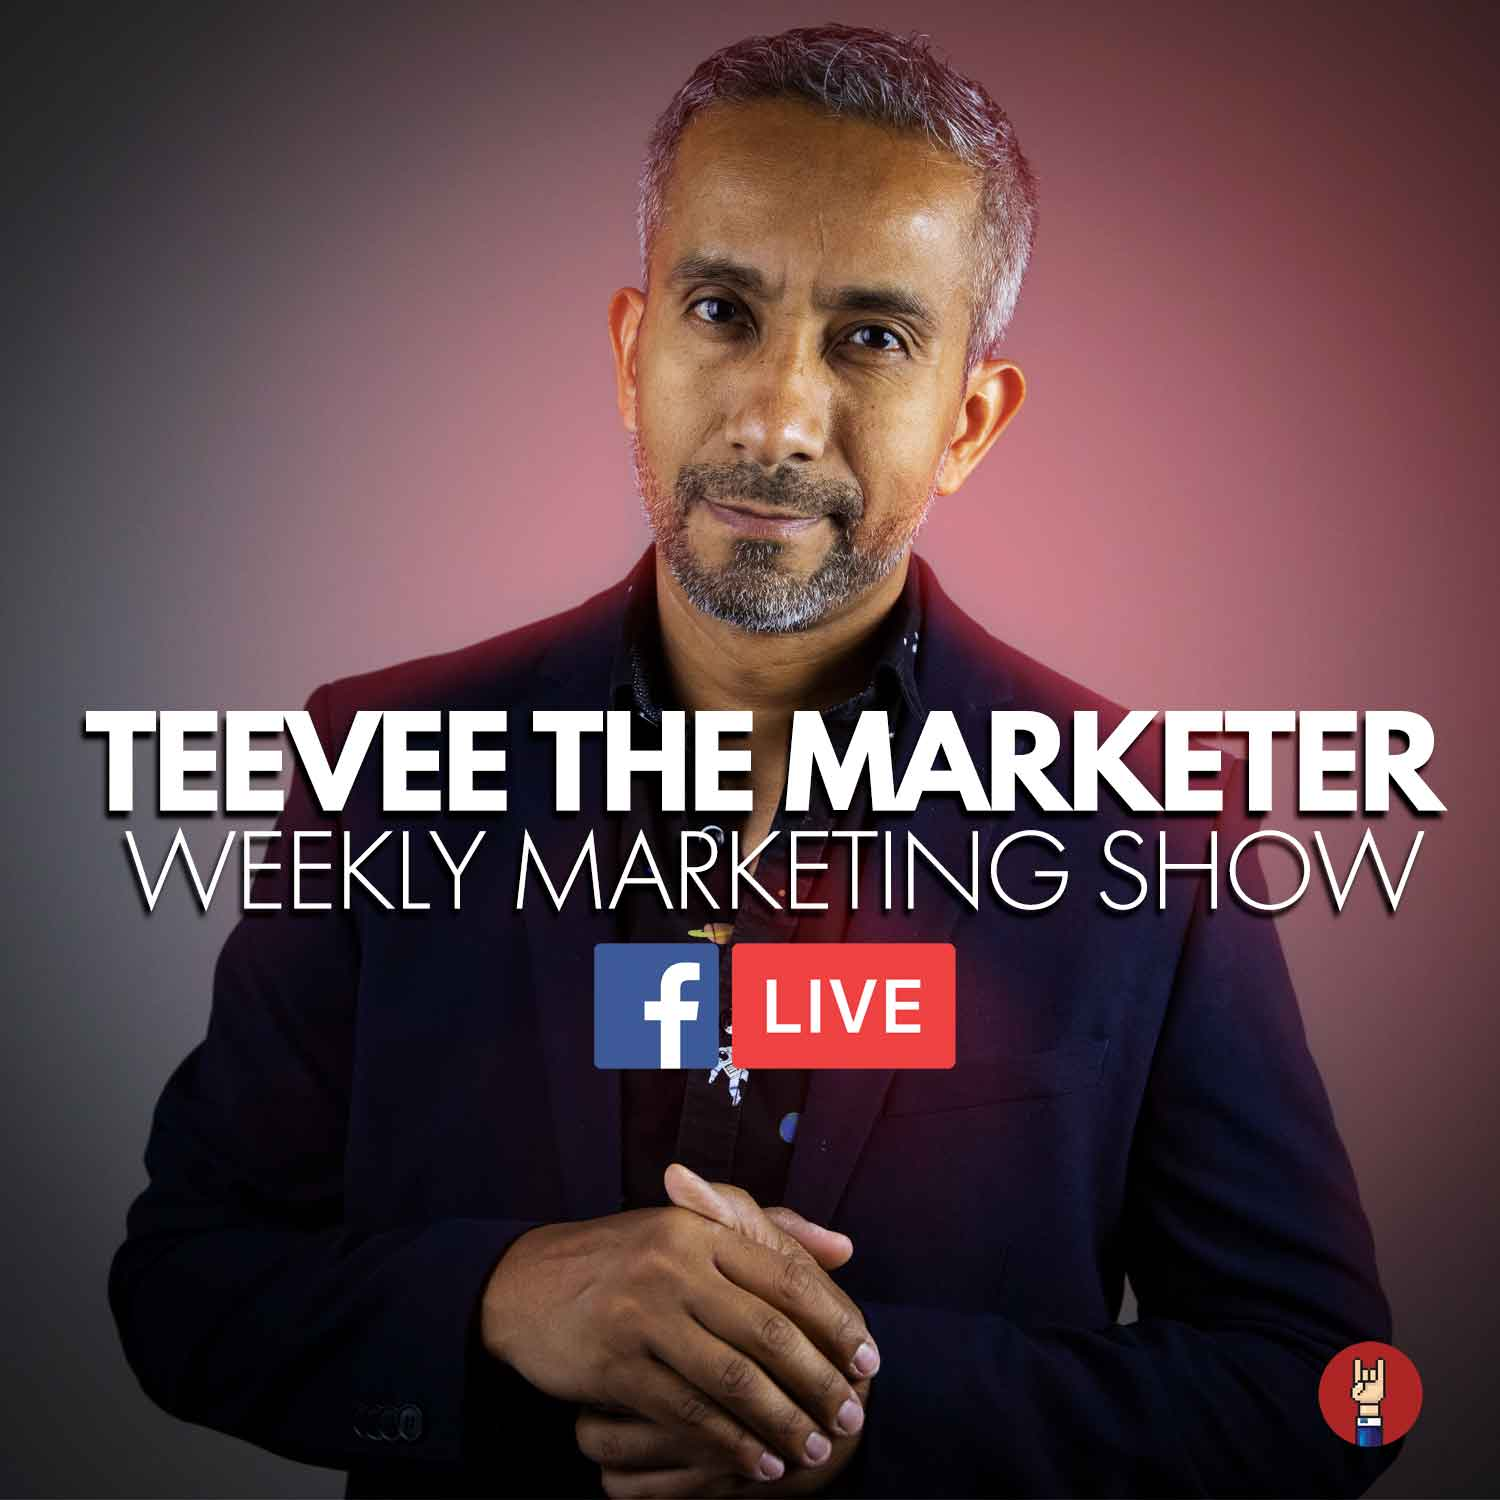 Teevee the Marketer: Weekly Marketing Show EP 2 | December 10, 2019